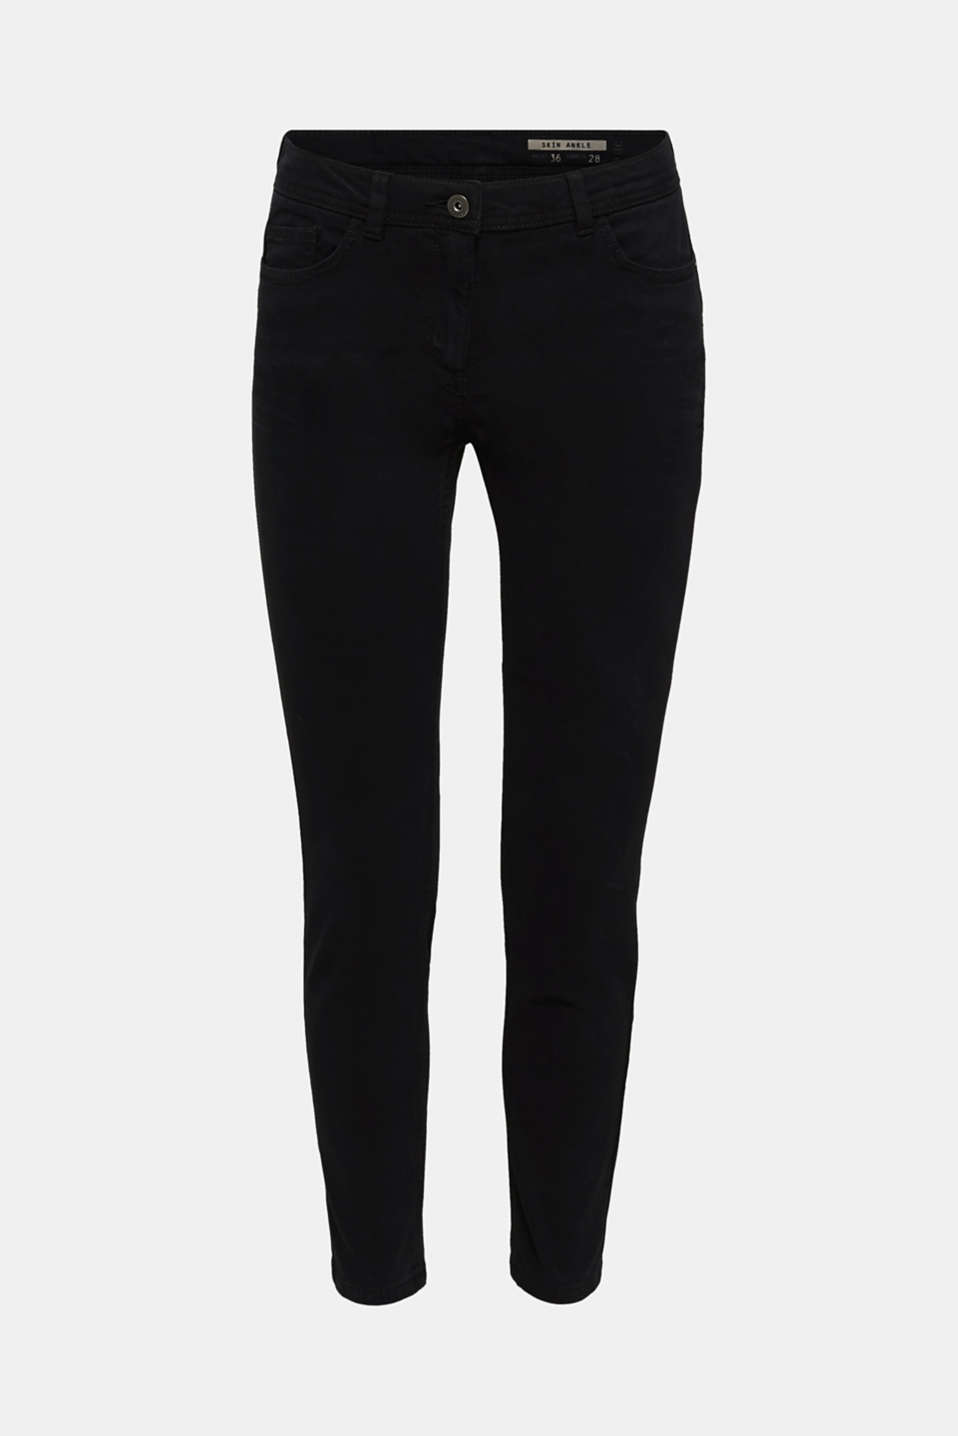 Trousers in a garment washed look, BLACK, detail image number 6